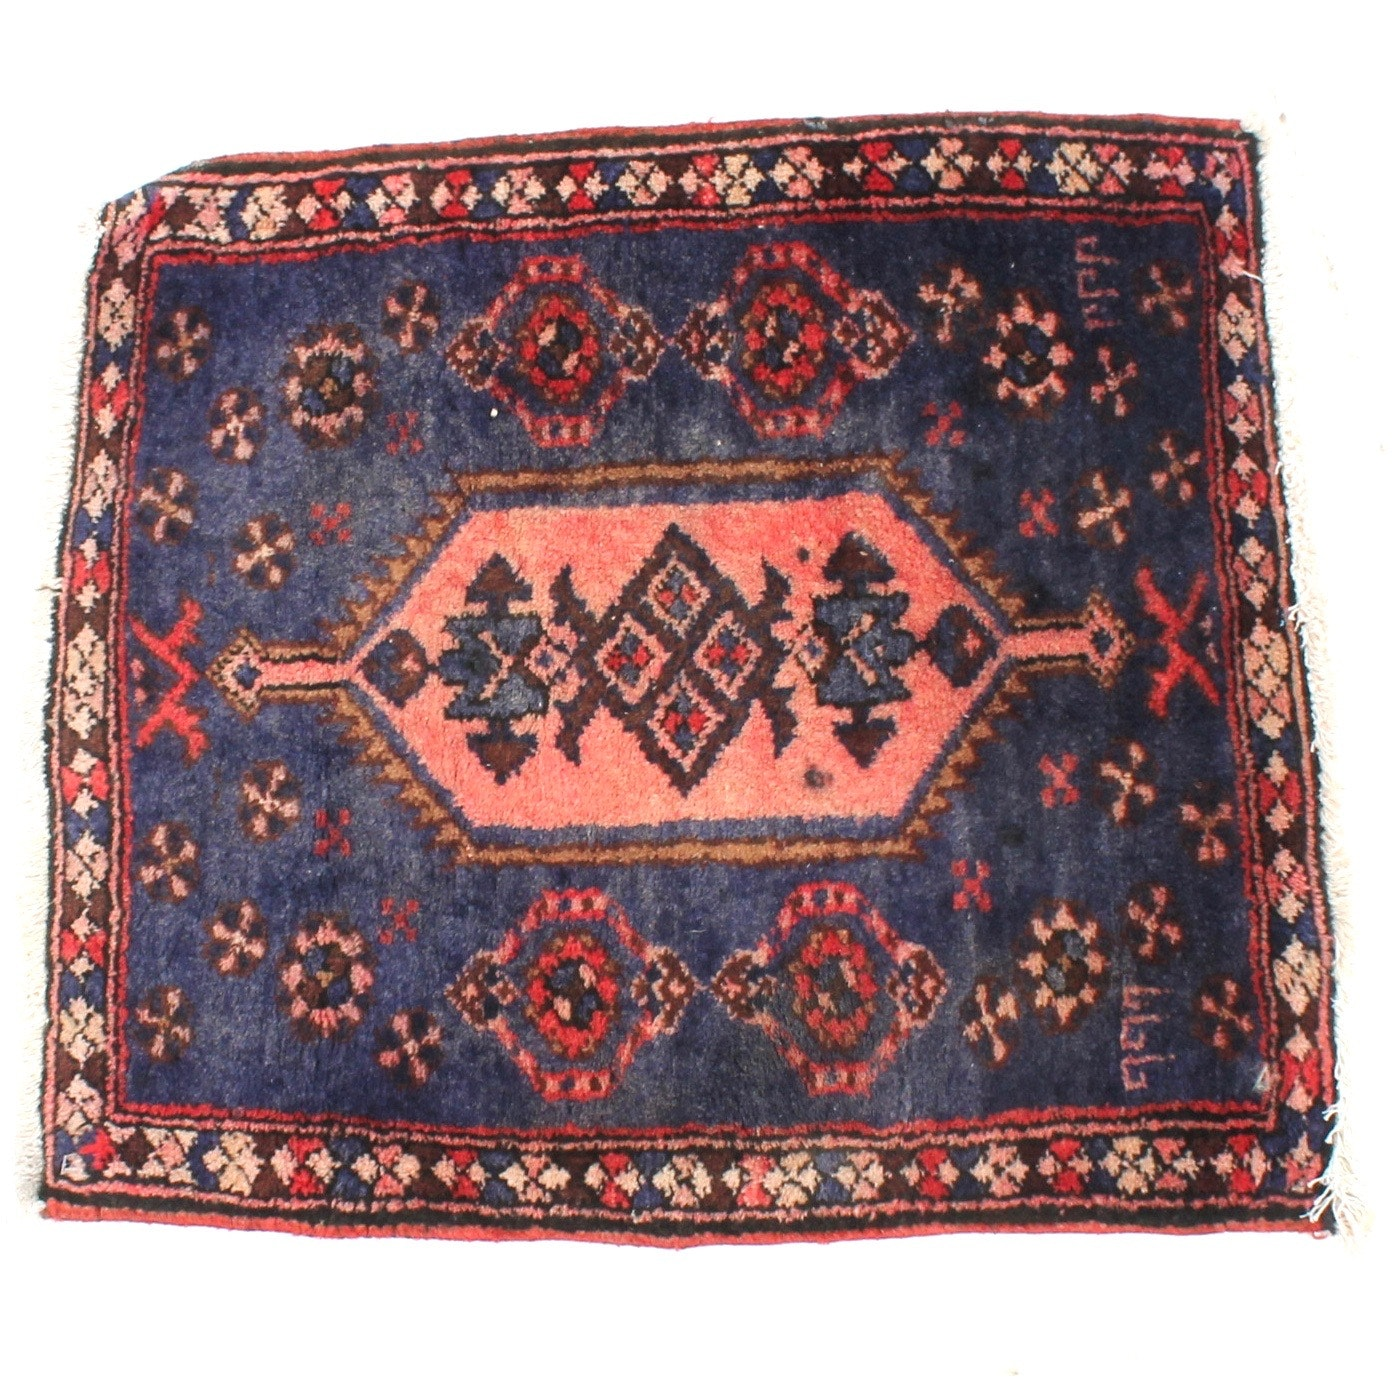 Semi-Antique Hand-Knotted Signed Northwest Persia Rug